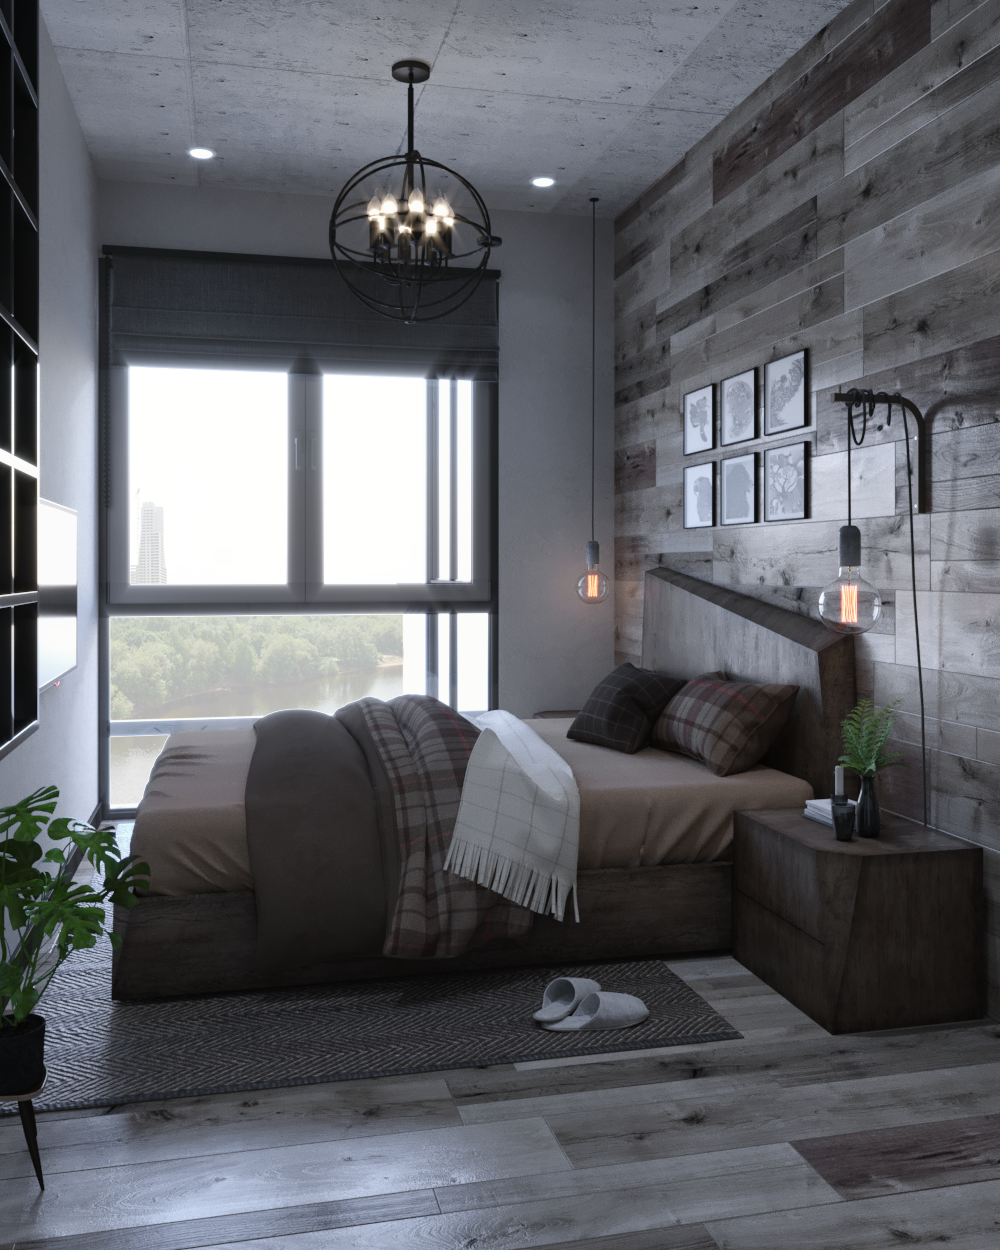 innovative industrial interior design bedroom ideas | Small Apartment | Industrial Interior Design on Behance